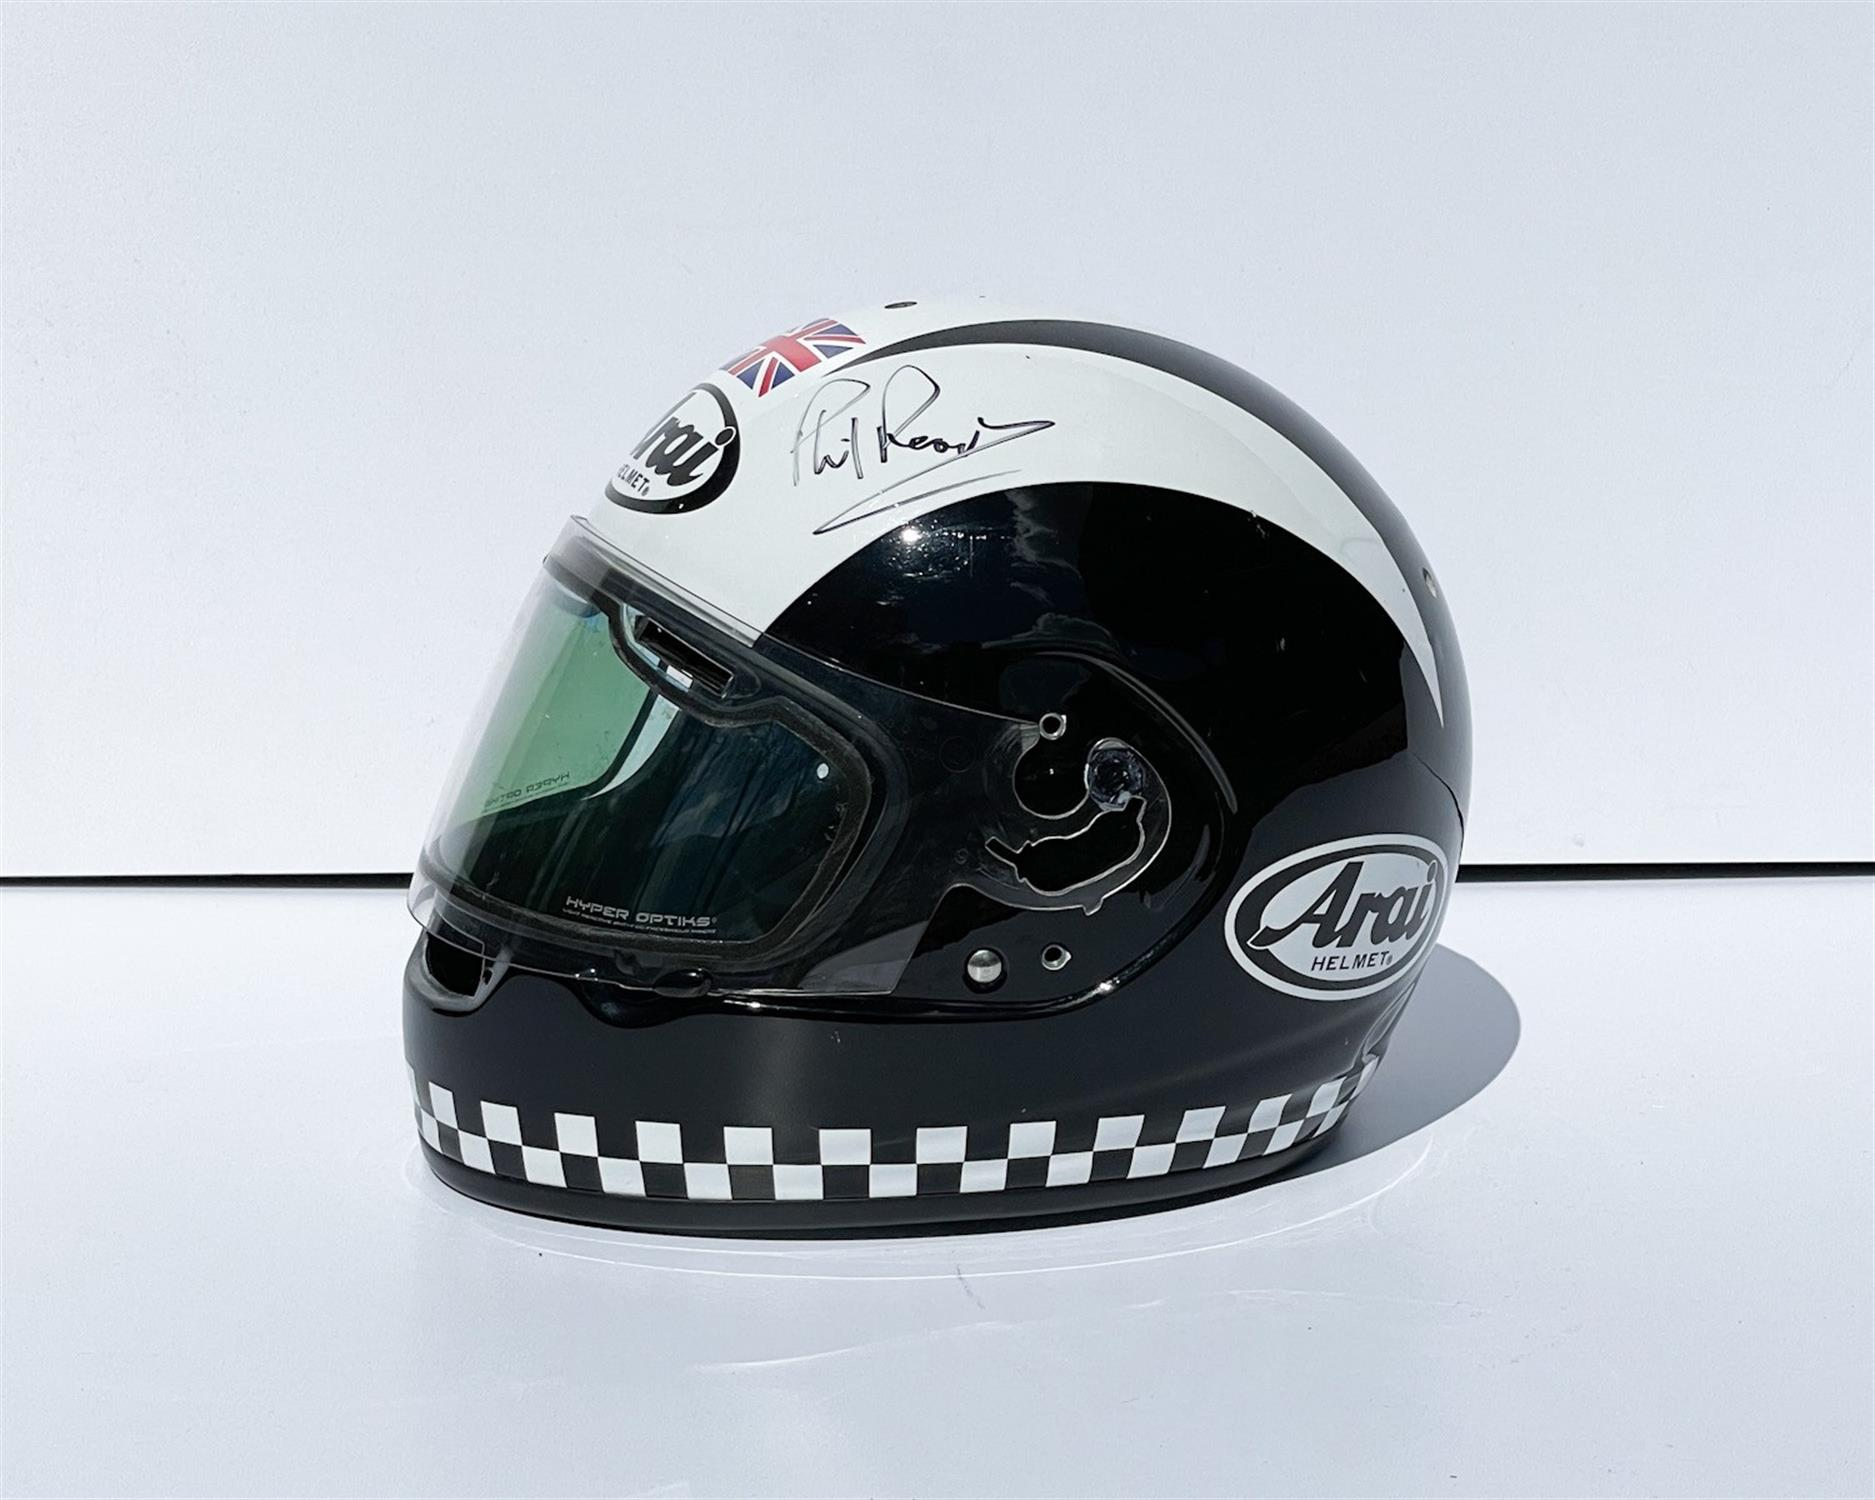 Phil Read Trophy, Replica Helmet and Programme - Image 2 of 2